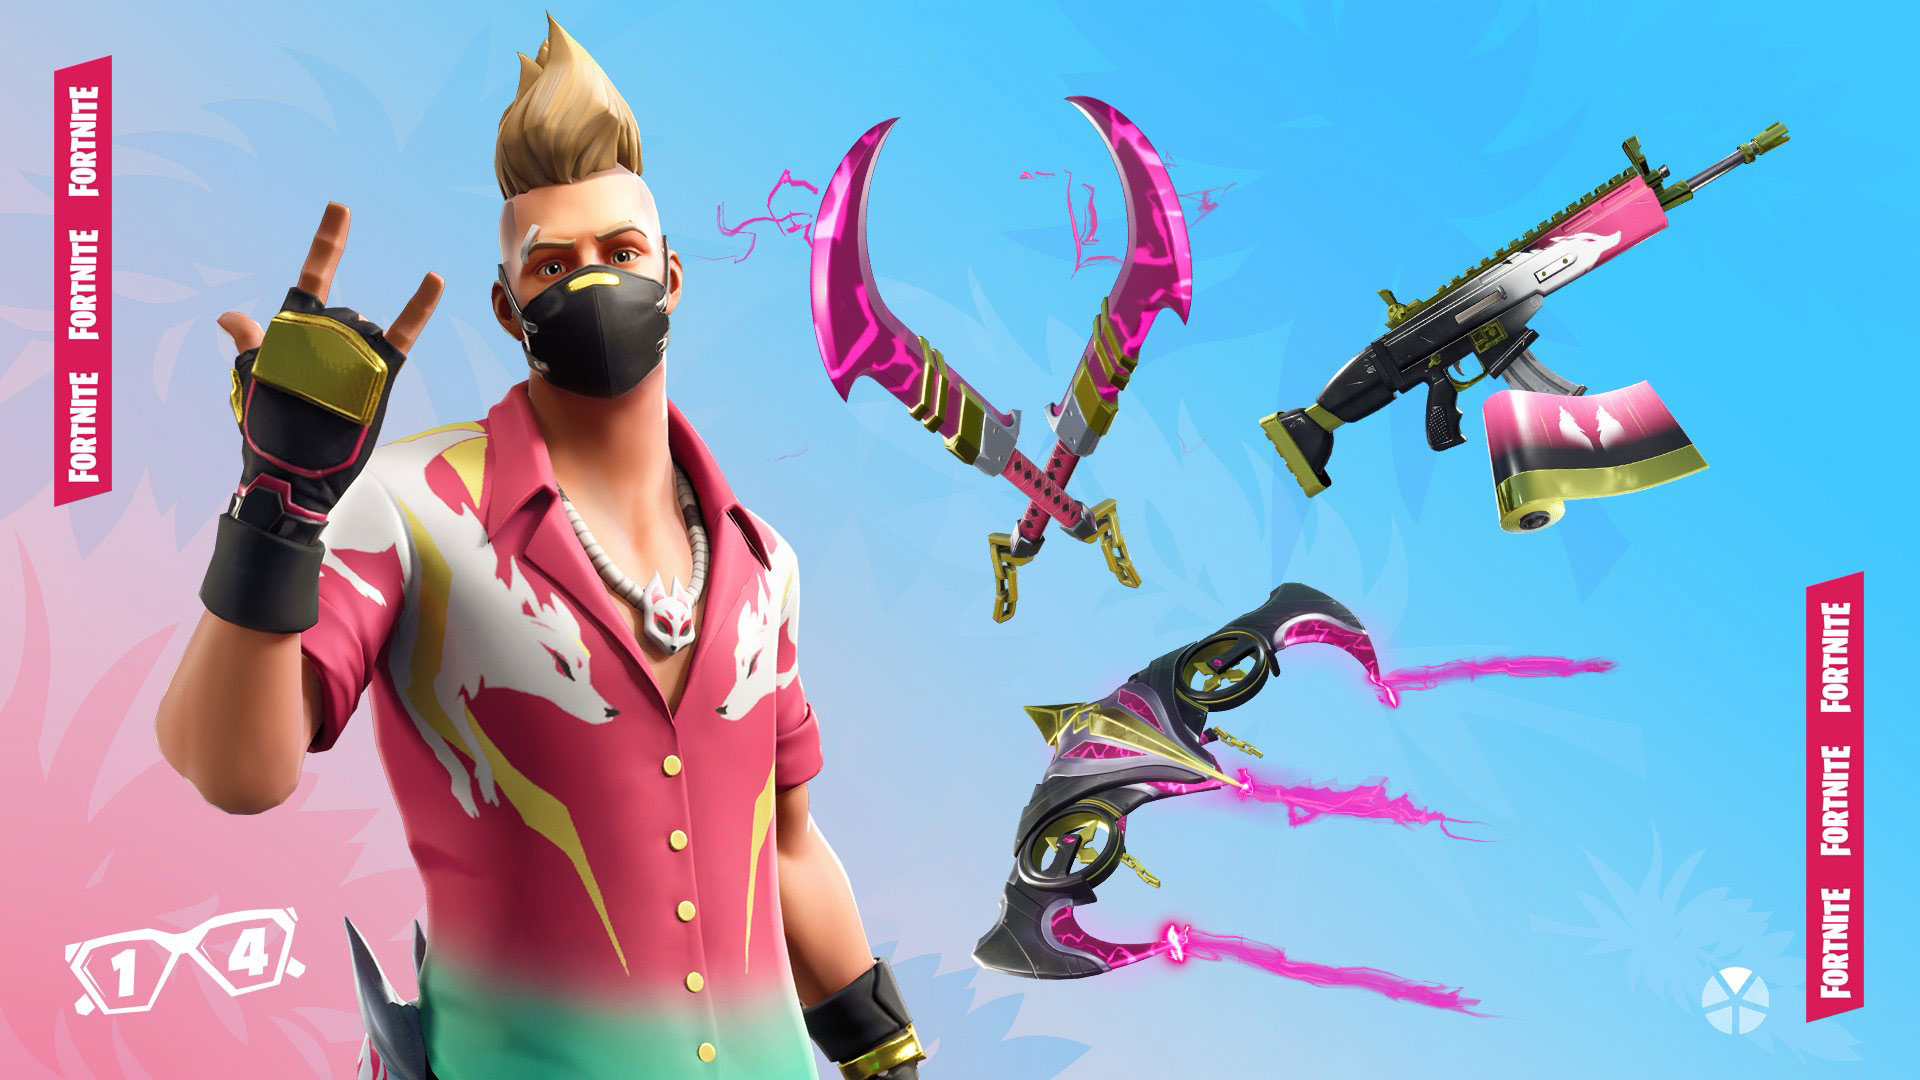 Fortnite Summer Drift Skin   Outfit PNGs Images   Pro Game Guides 1920x1080